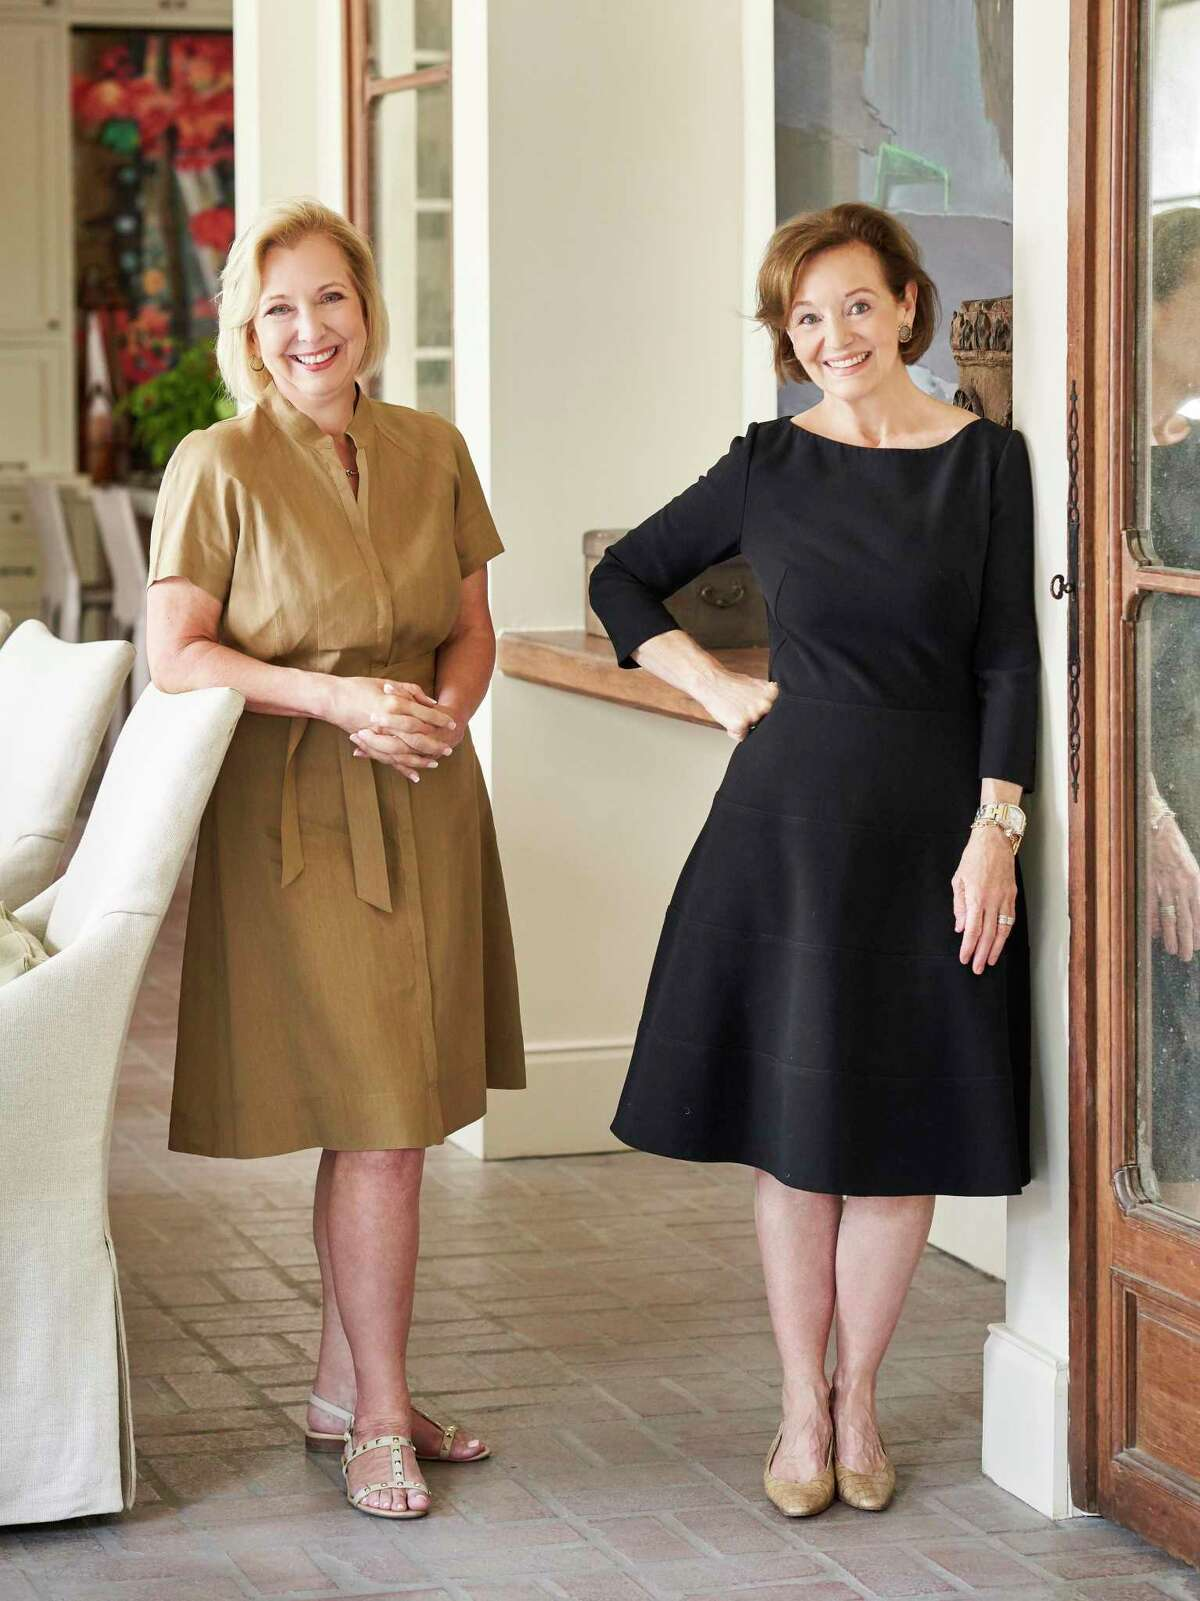 Interior designers Sarah Eilers and Sandy Lucas have published a new book,